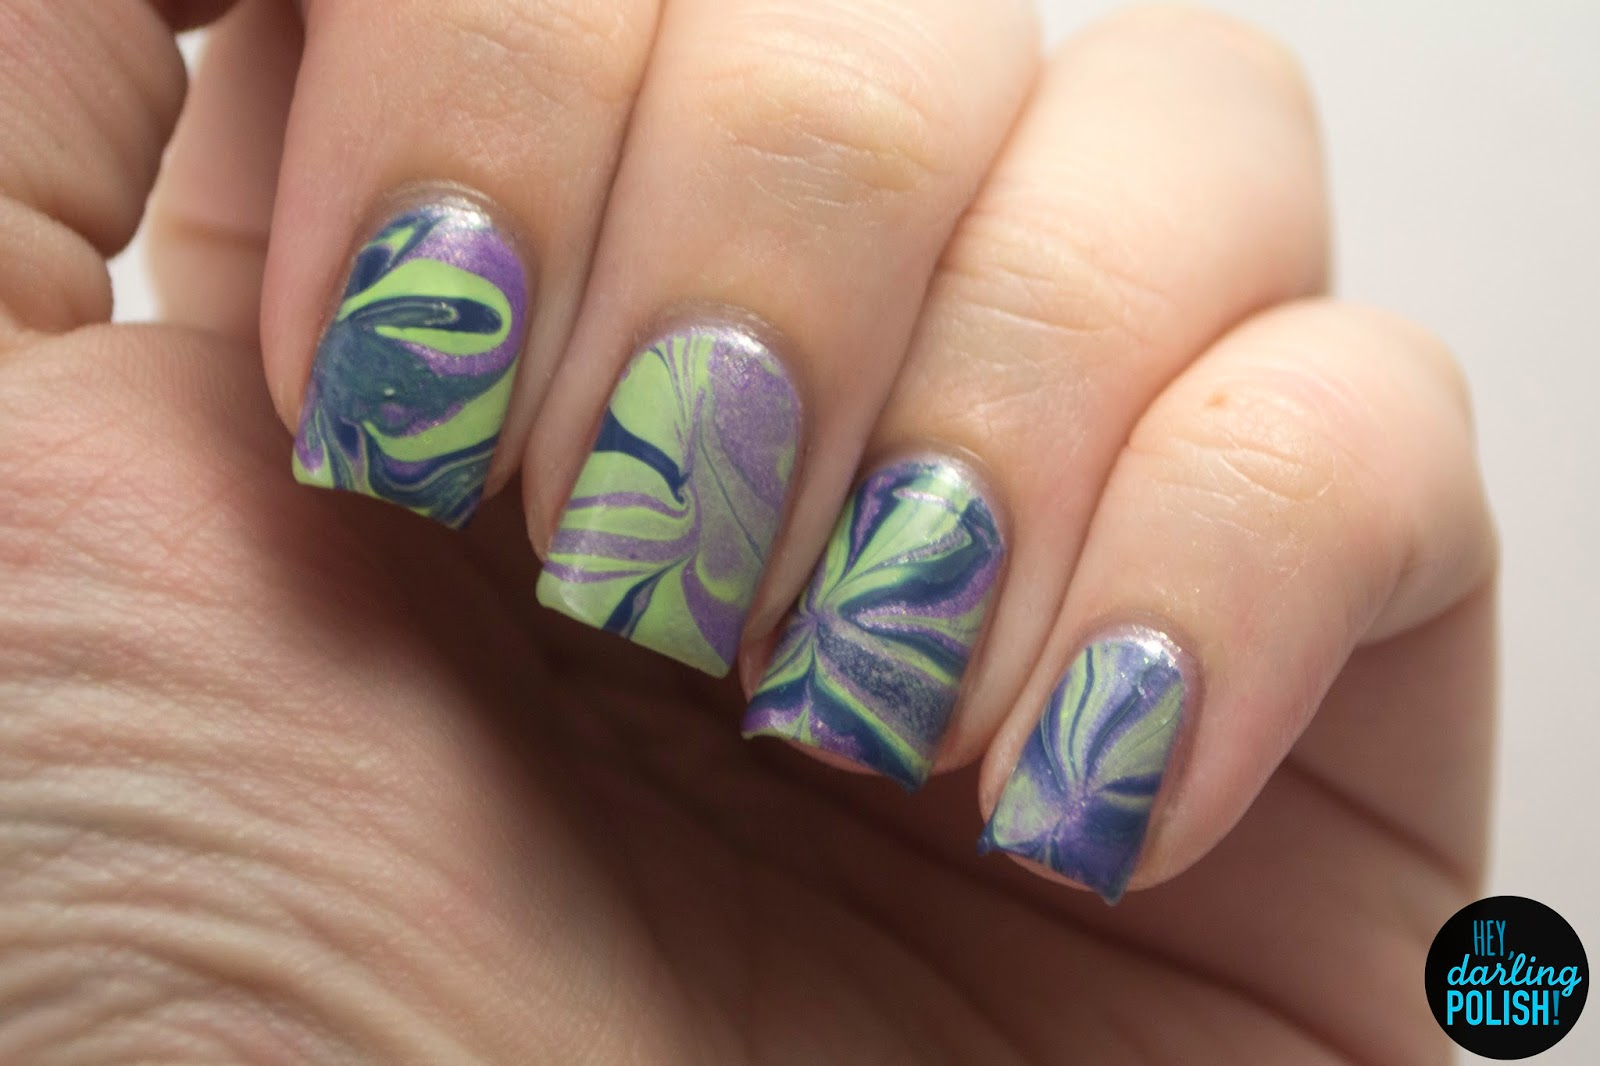 nails, nail art, nail polish, polish, purple, green, blue, watermarble, hey darling polish,